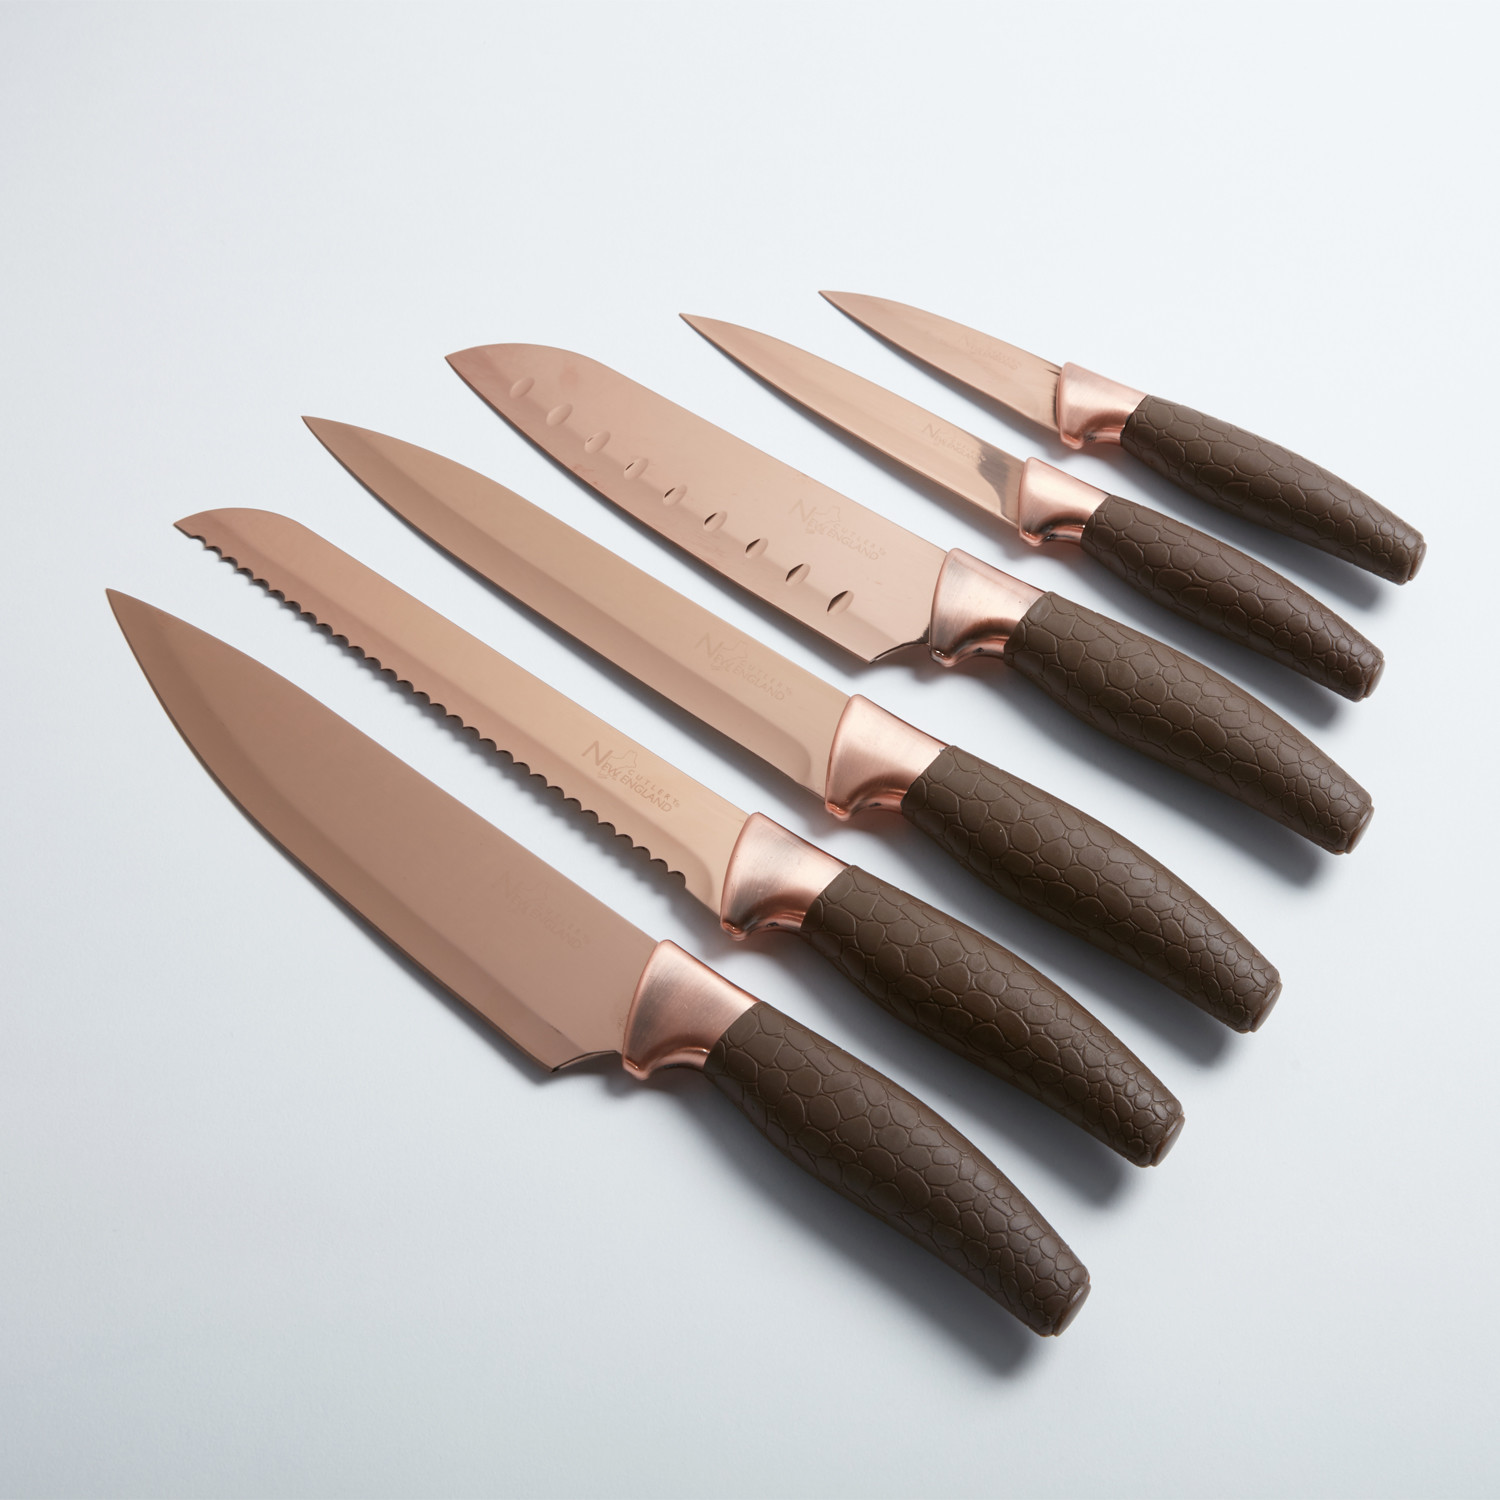 Modern Kitchen Knife Set titanium coated knife set // 7 piece - new england cutlery - touch